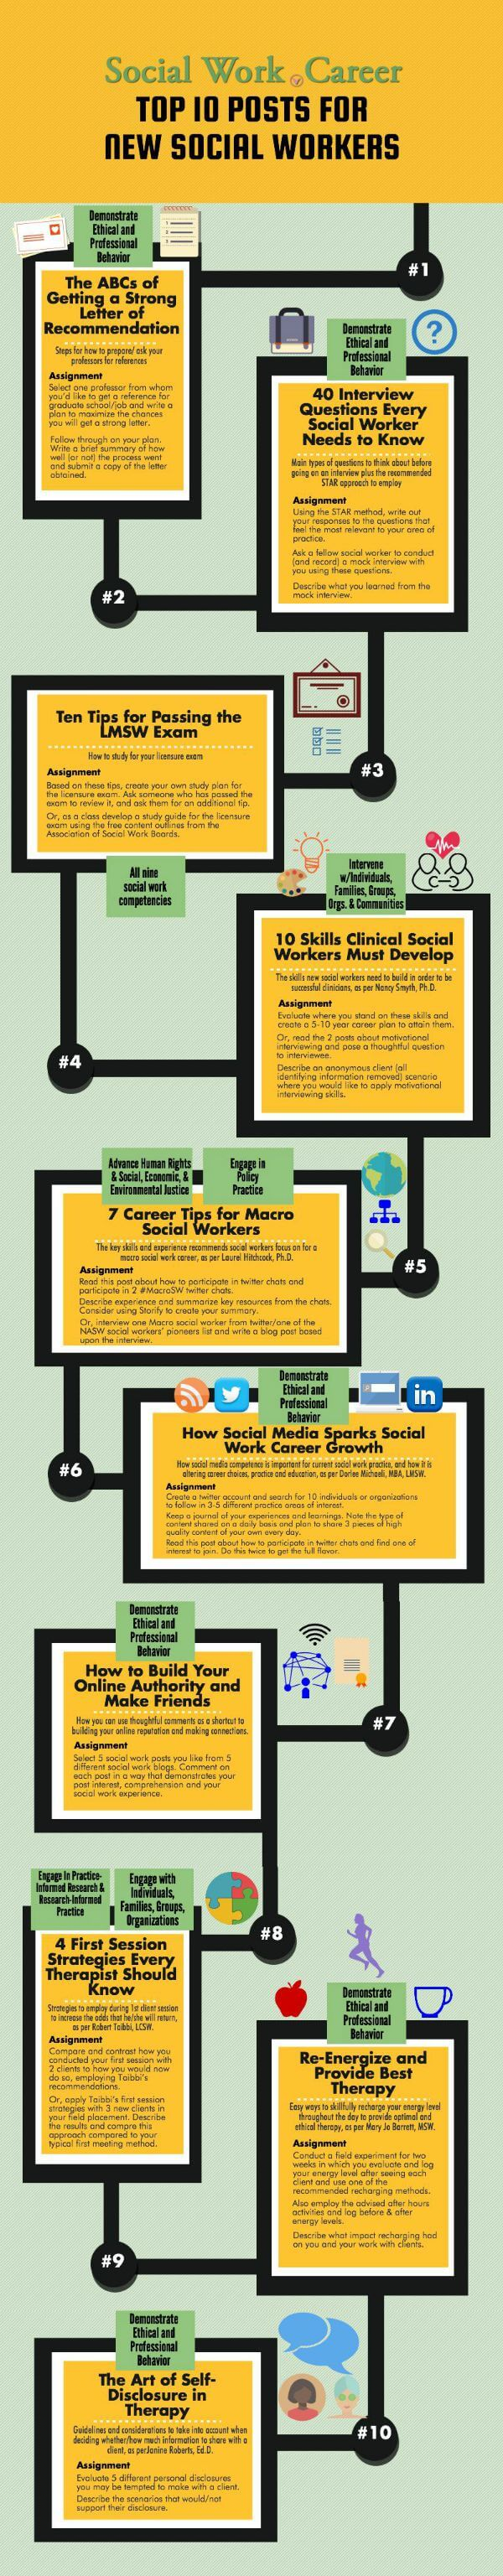 Online Toolkit for New Social Workers < also helpful for #socialwork educators #highered